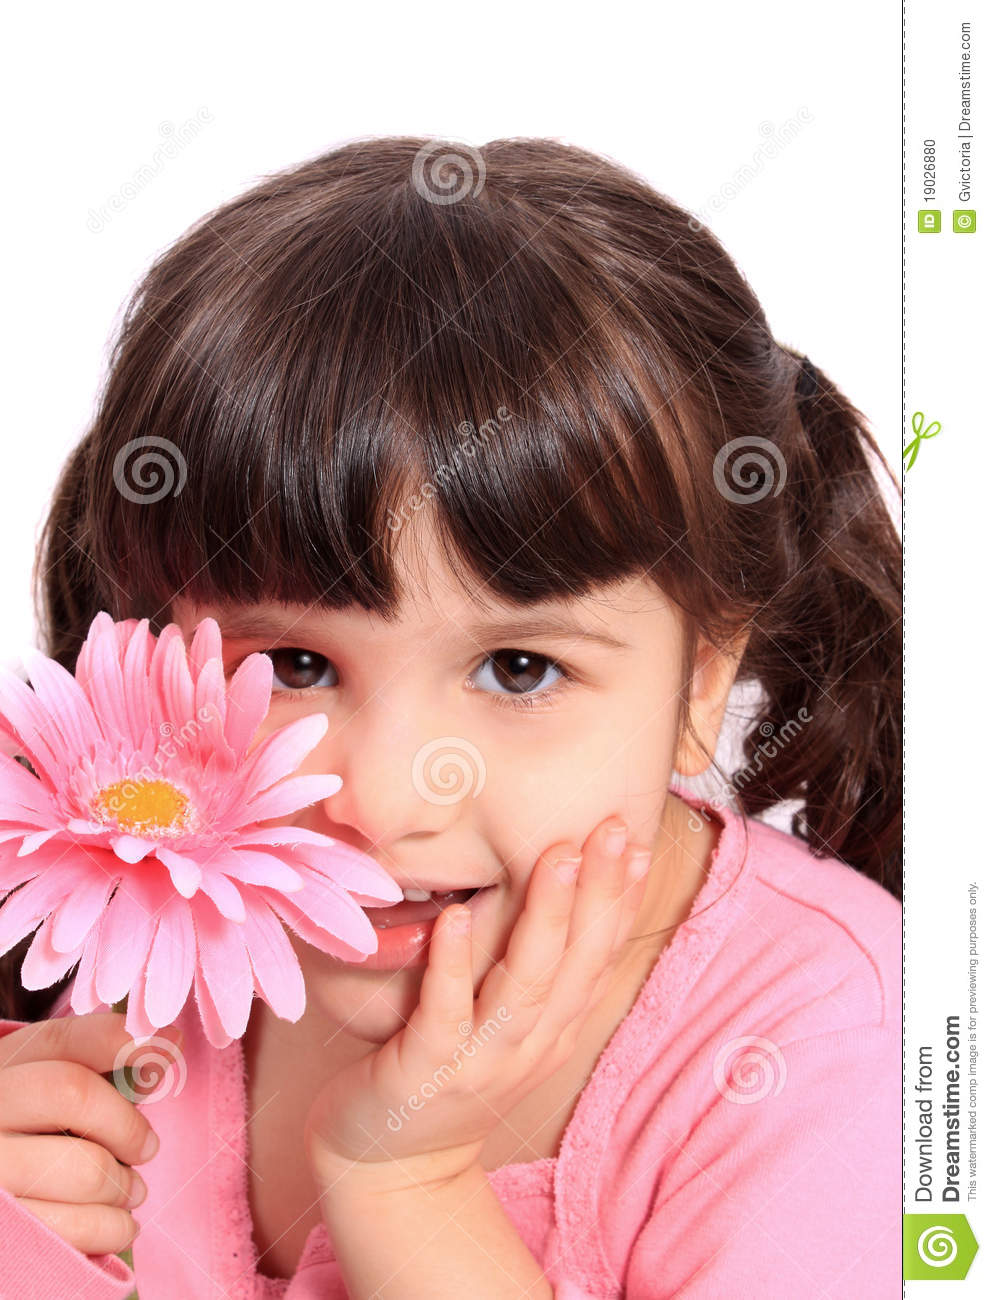 Adorable Four Year Boy With Big Blue Eyes Stock Image: Cute Little Four Year Old Girl With Daisy Stock Photo